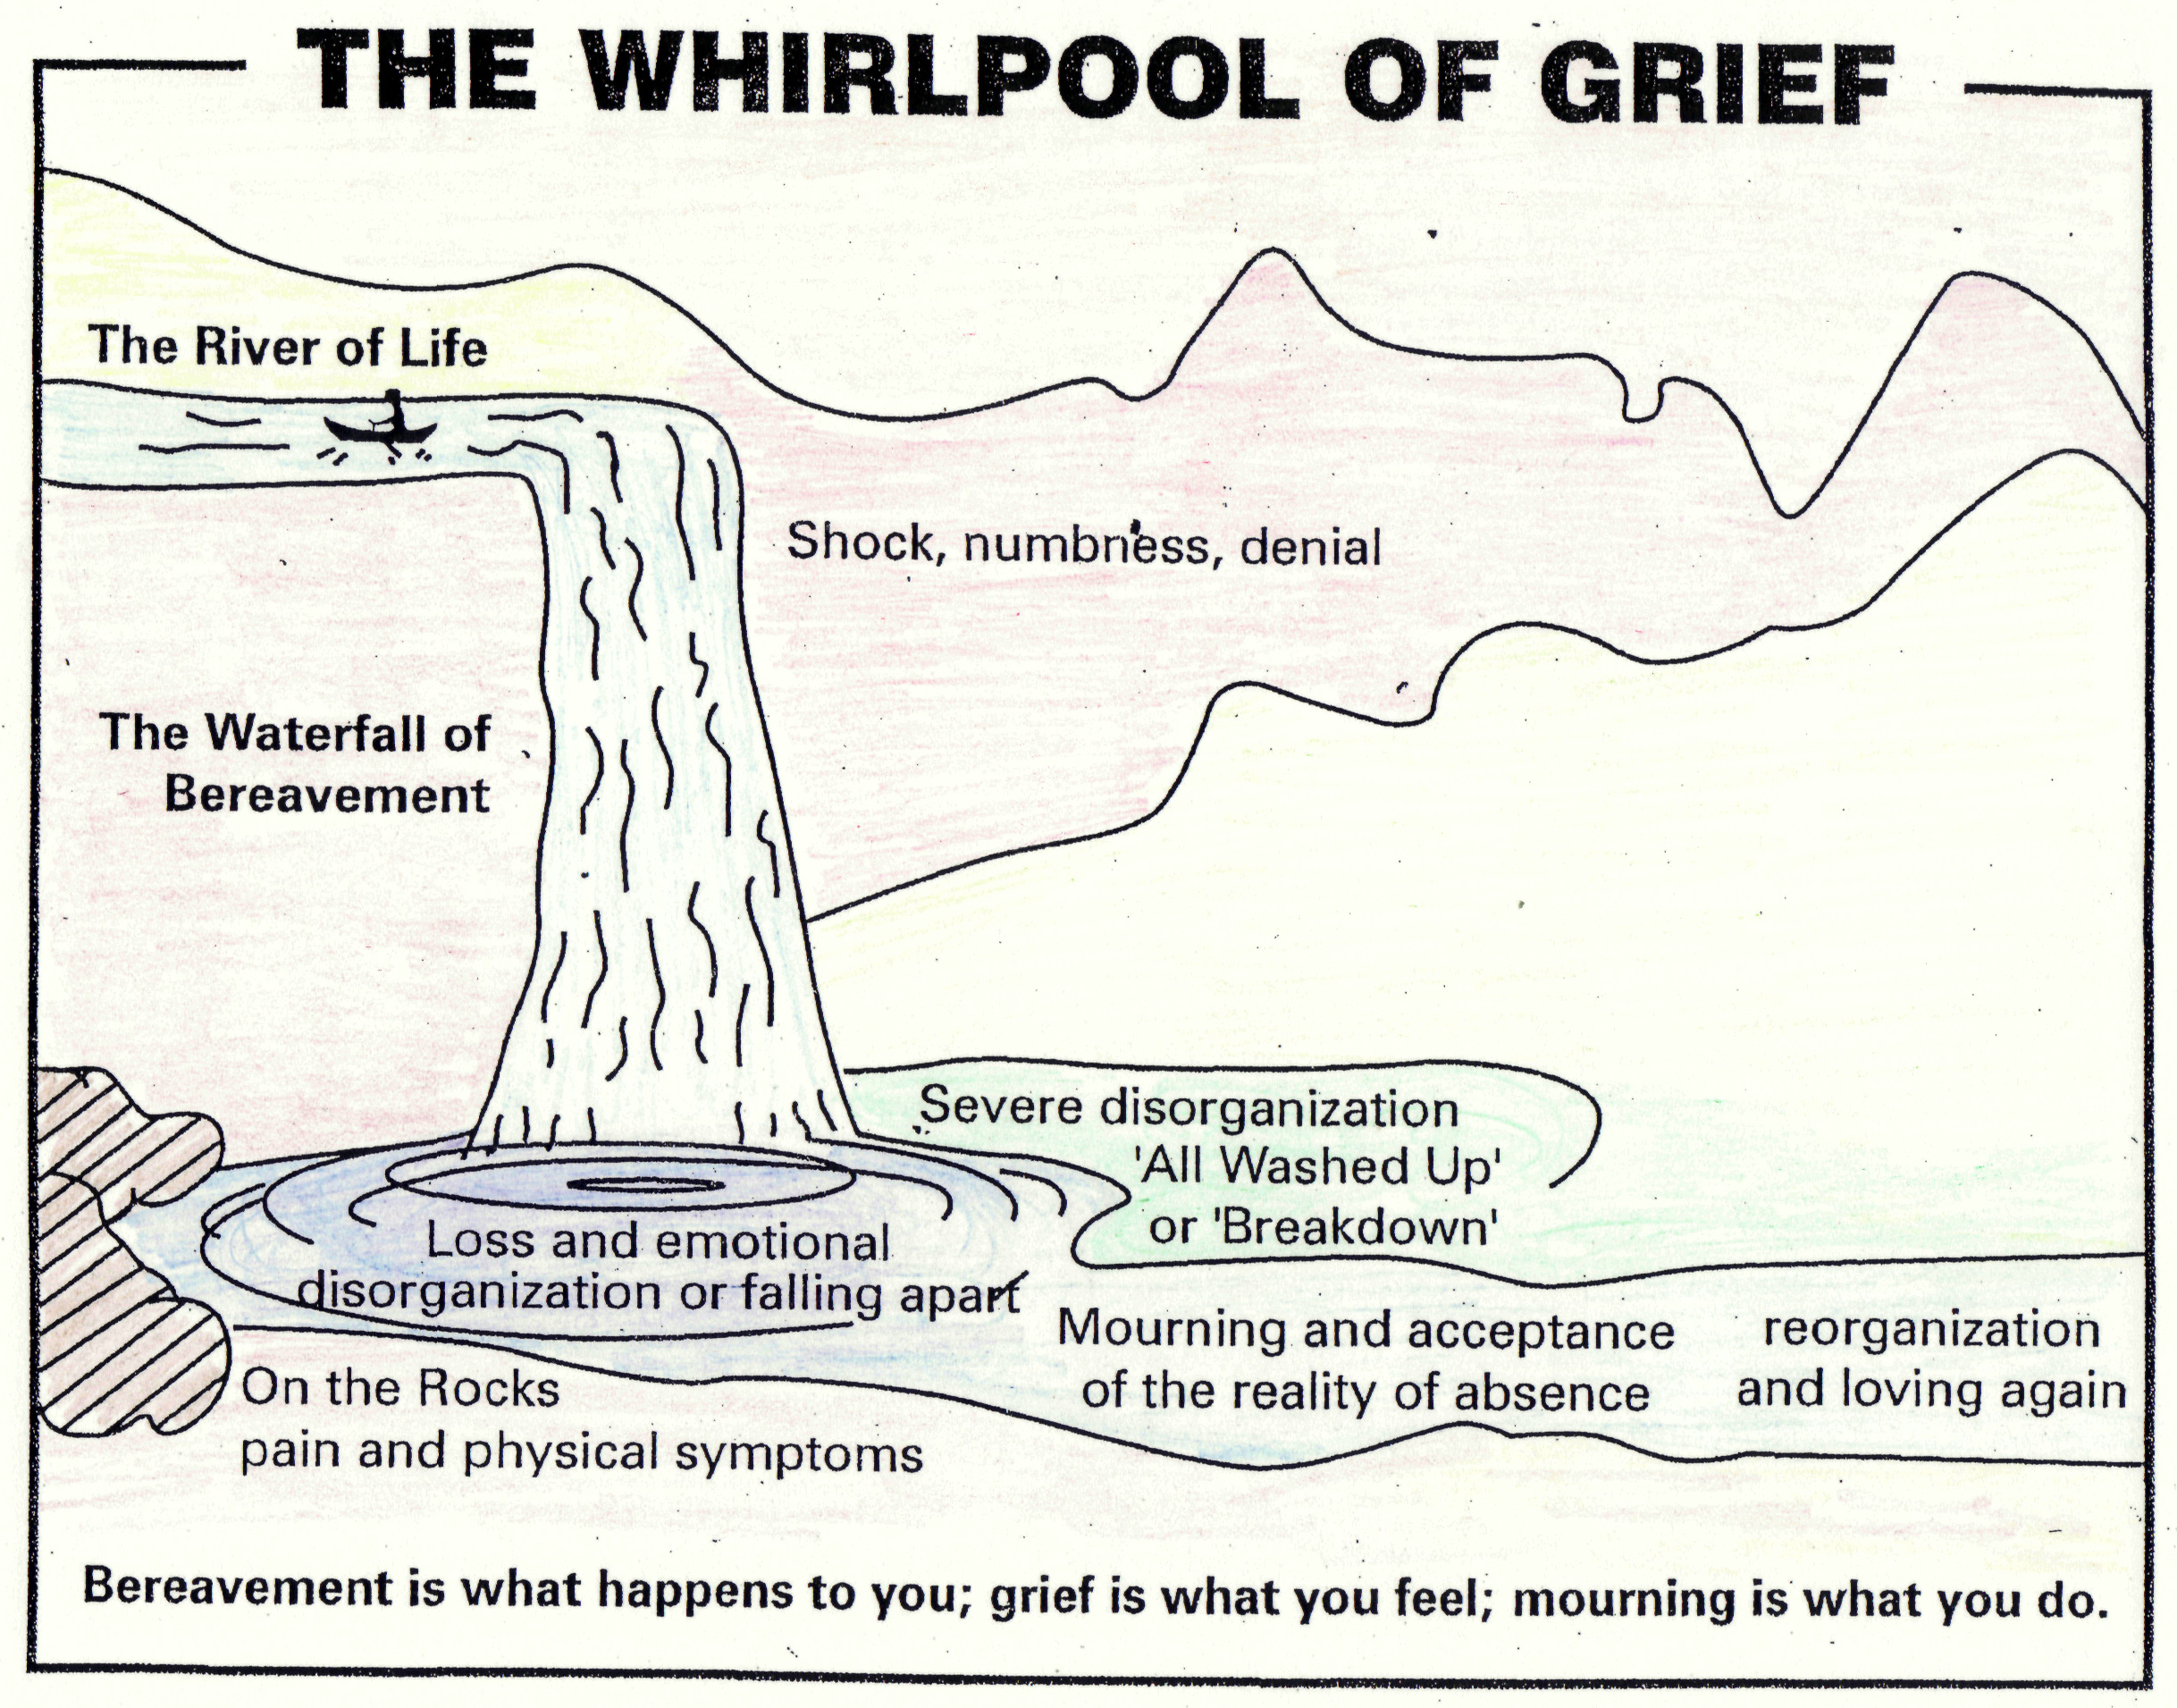 Free Worksheet Grief Worksheet grief counseling worksheets worksheet workbook site the whirlpool of chasing dragonflies